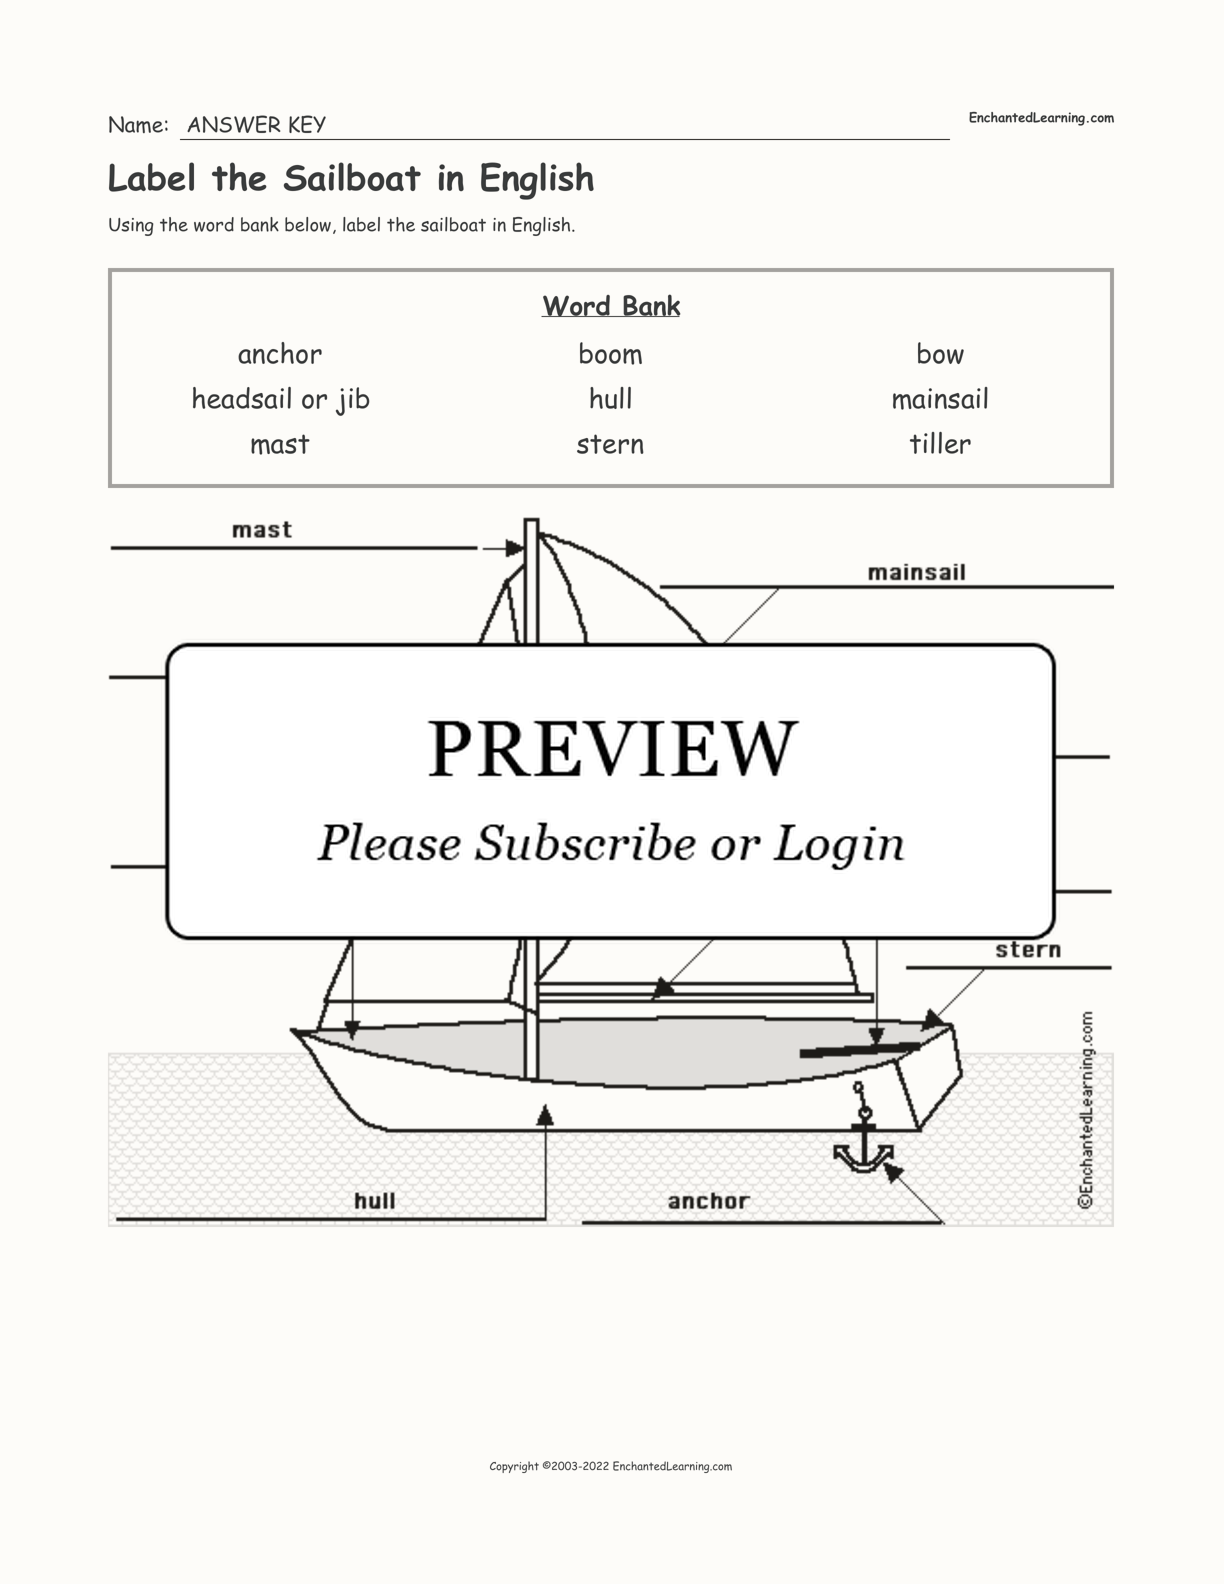 Label the Sailboat in English interactive worksheet page 2